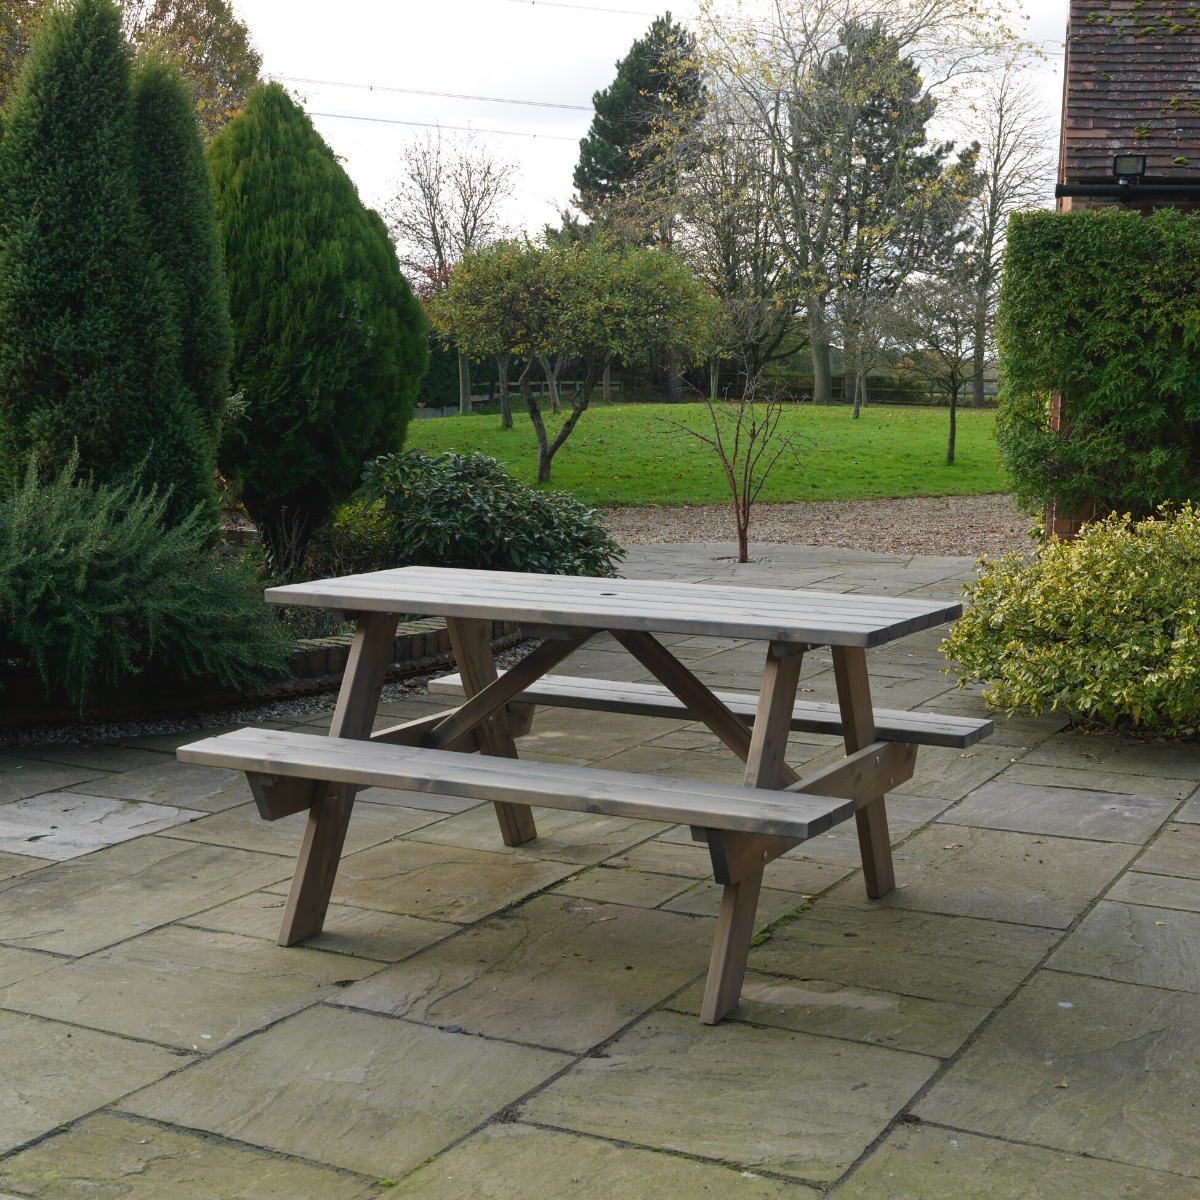 A grey painted wooden A-Frame Picnic table located on a patio